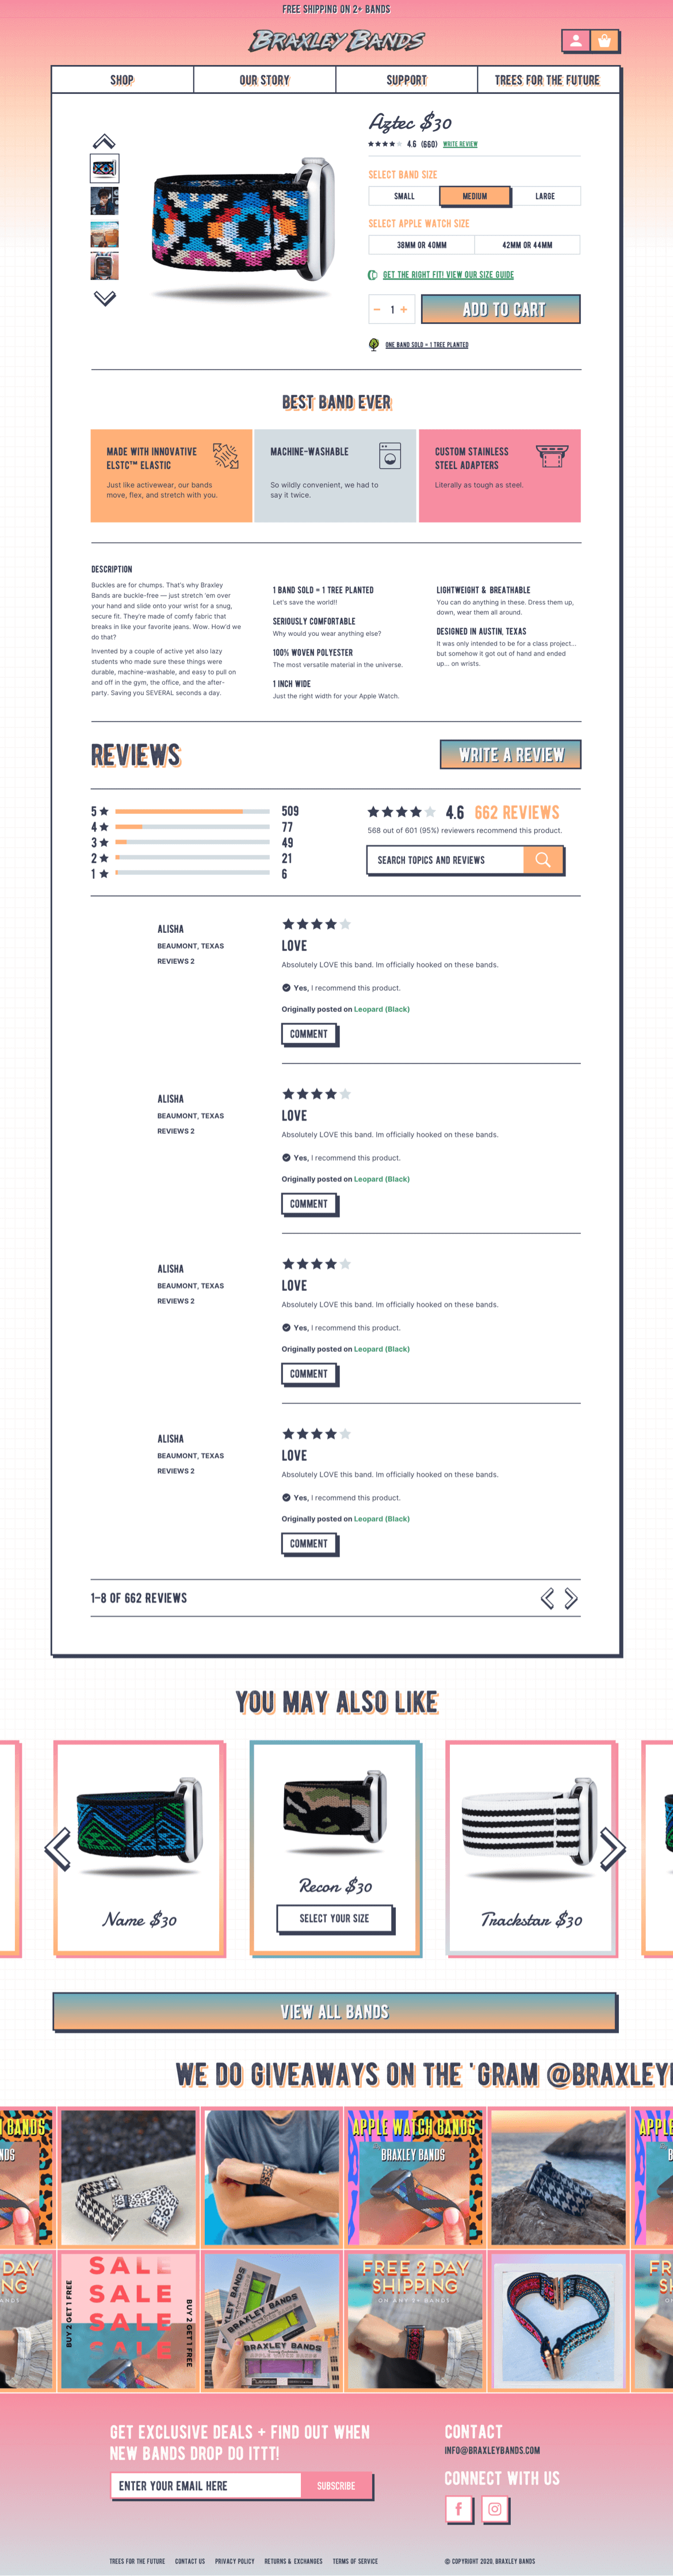 Product Detail Page (2)